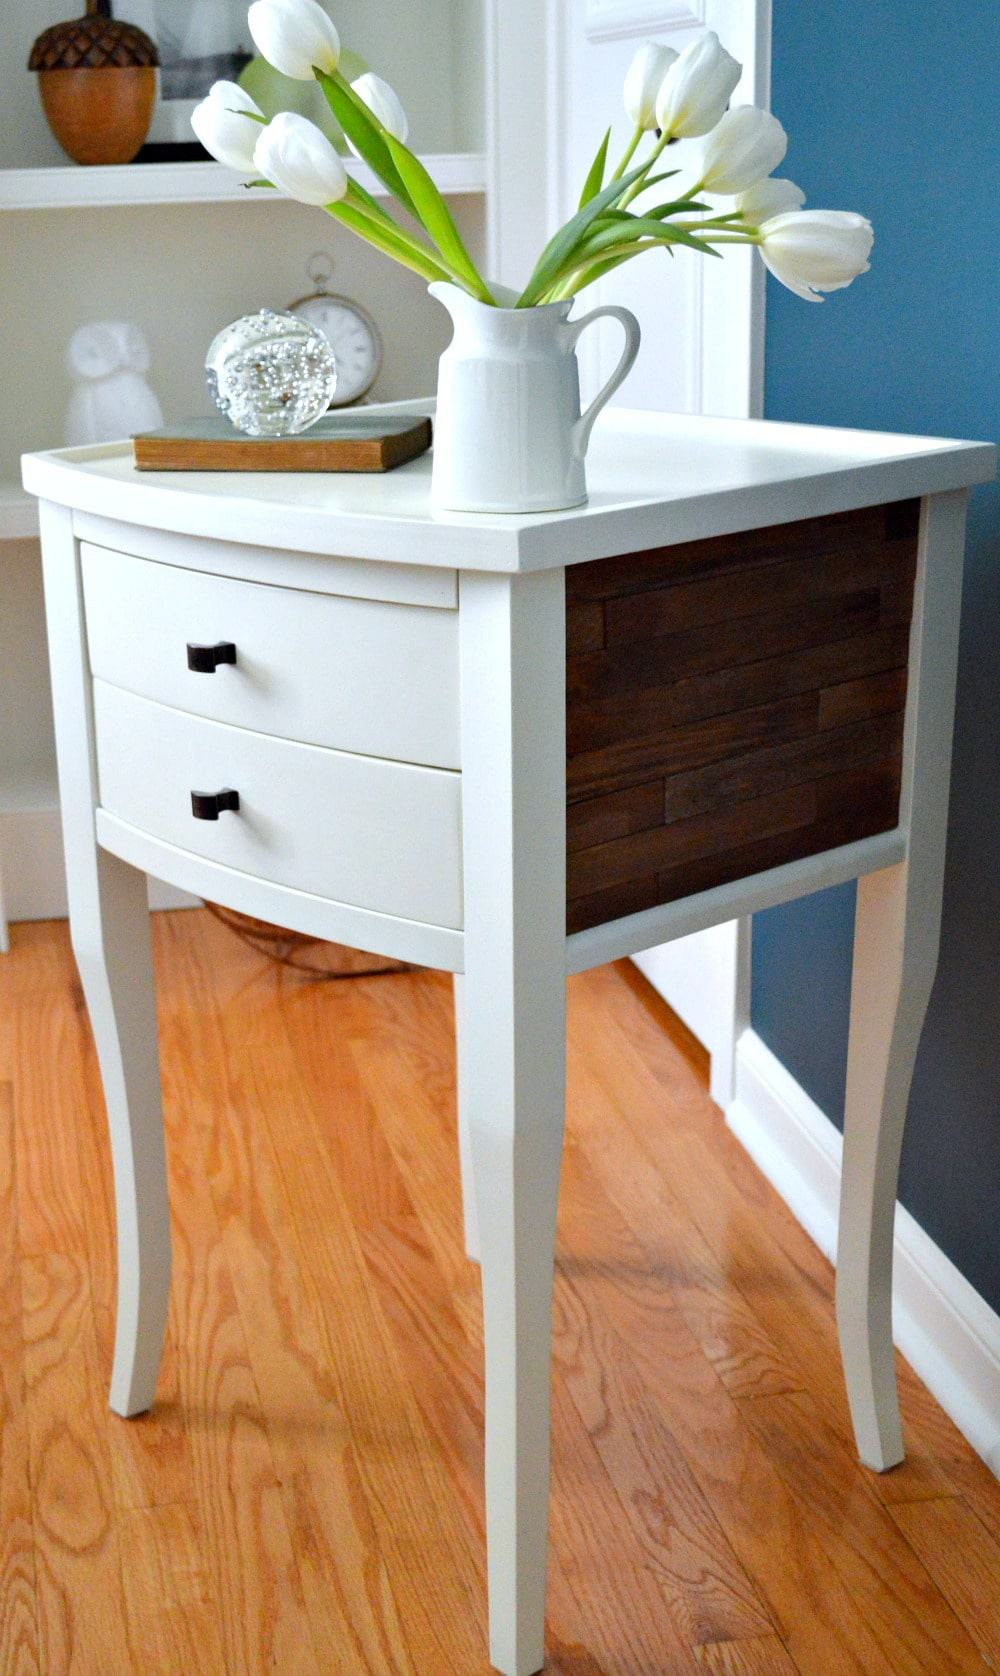 Home tour turquoise guest bedroom nightstand | www.chatfieldcourt.com